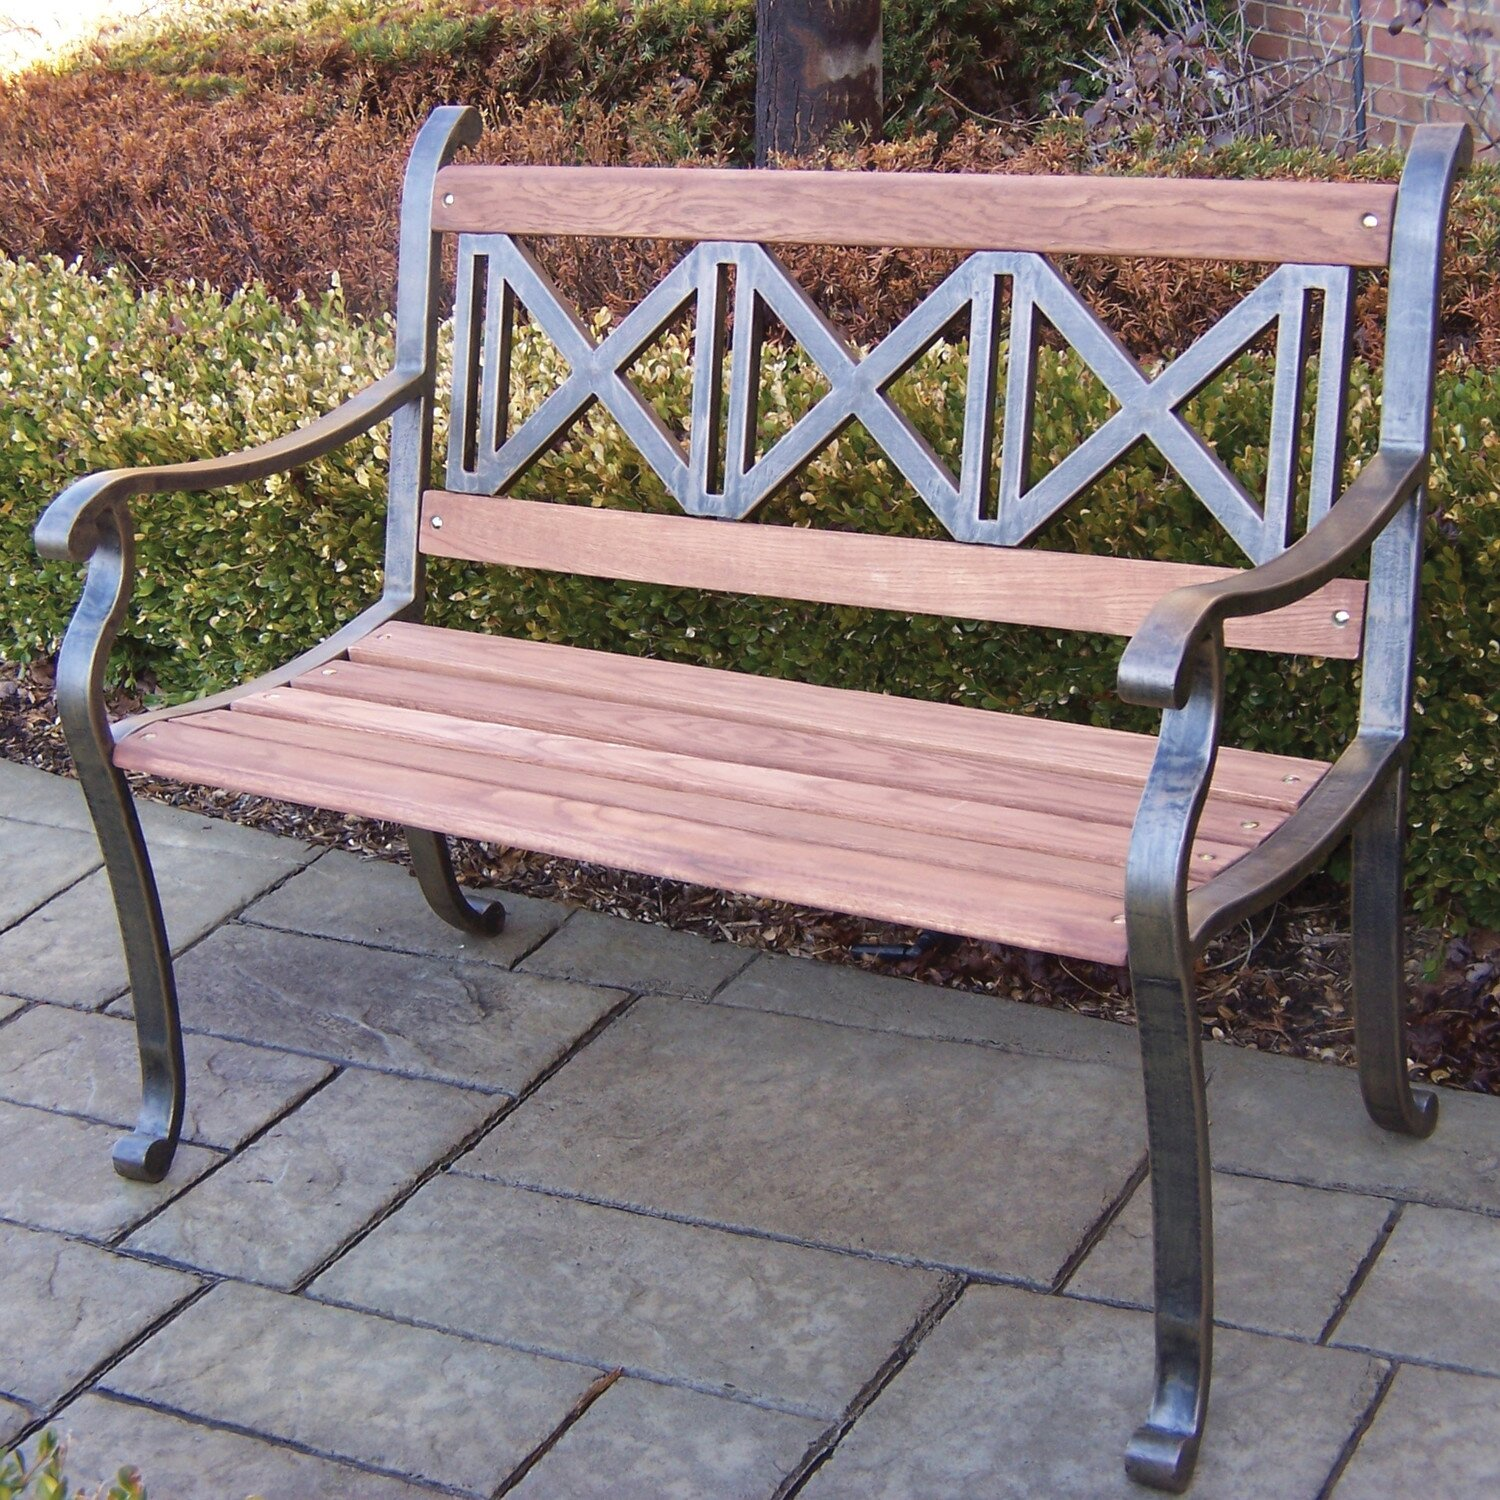 Patio Chairs Lowes | Lowes Porch Furniture | Lowes Lounge Chairs